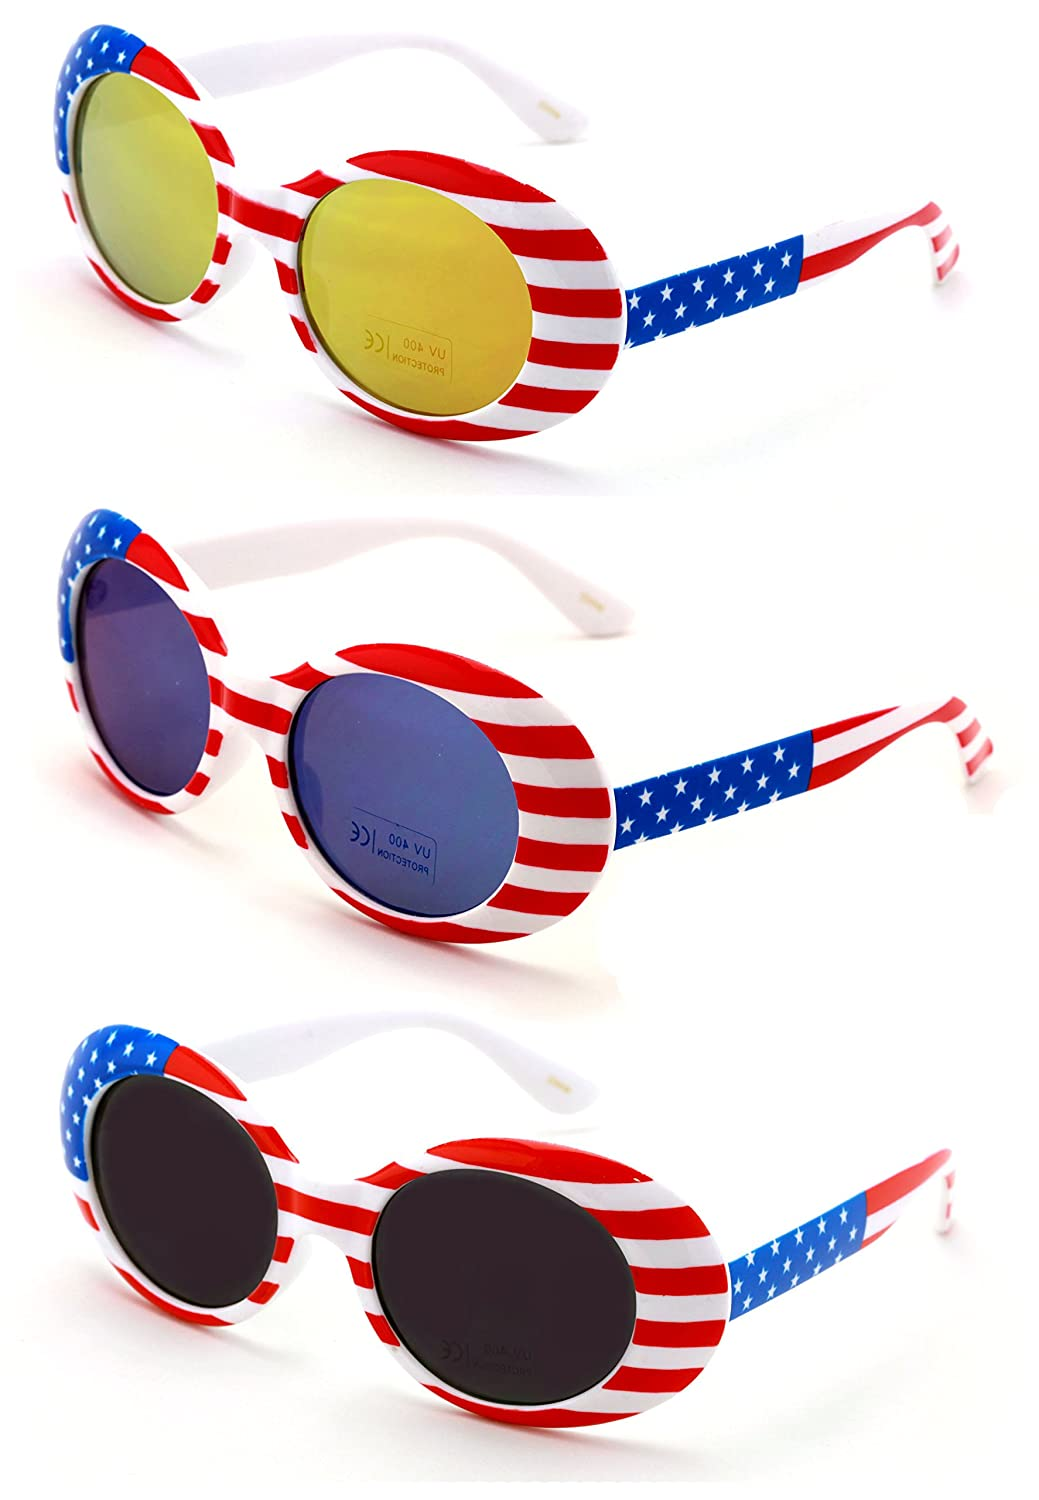 Amazon.com: V.W.E. Vintage Sunglasses UV400 Bold Retro Oval ...